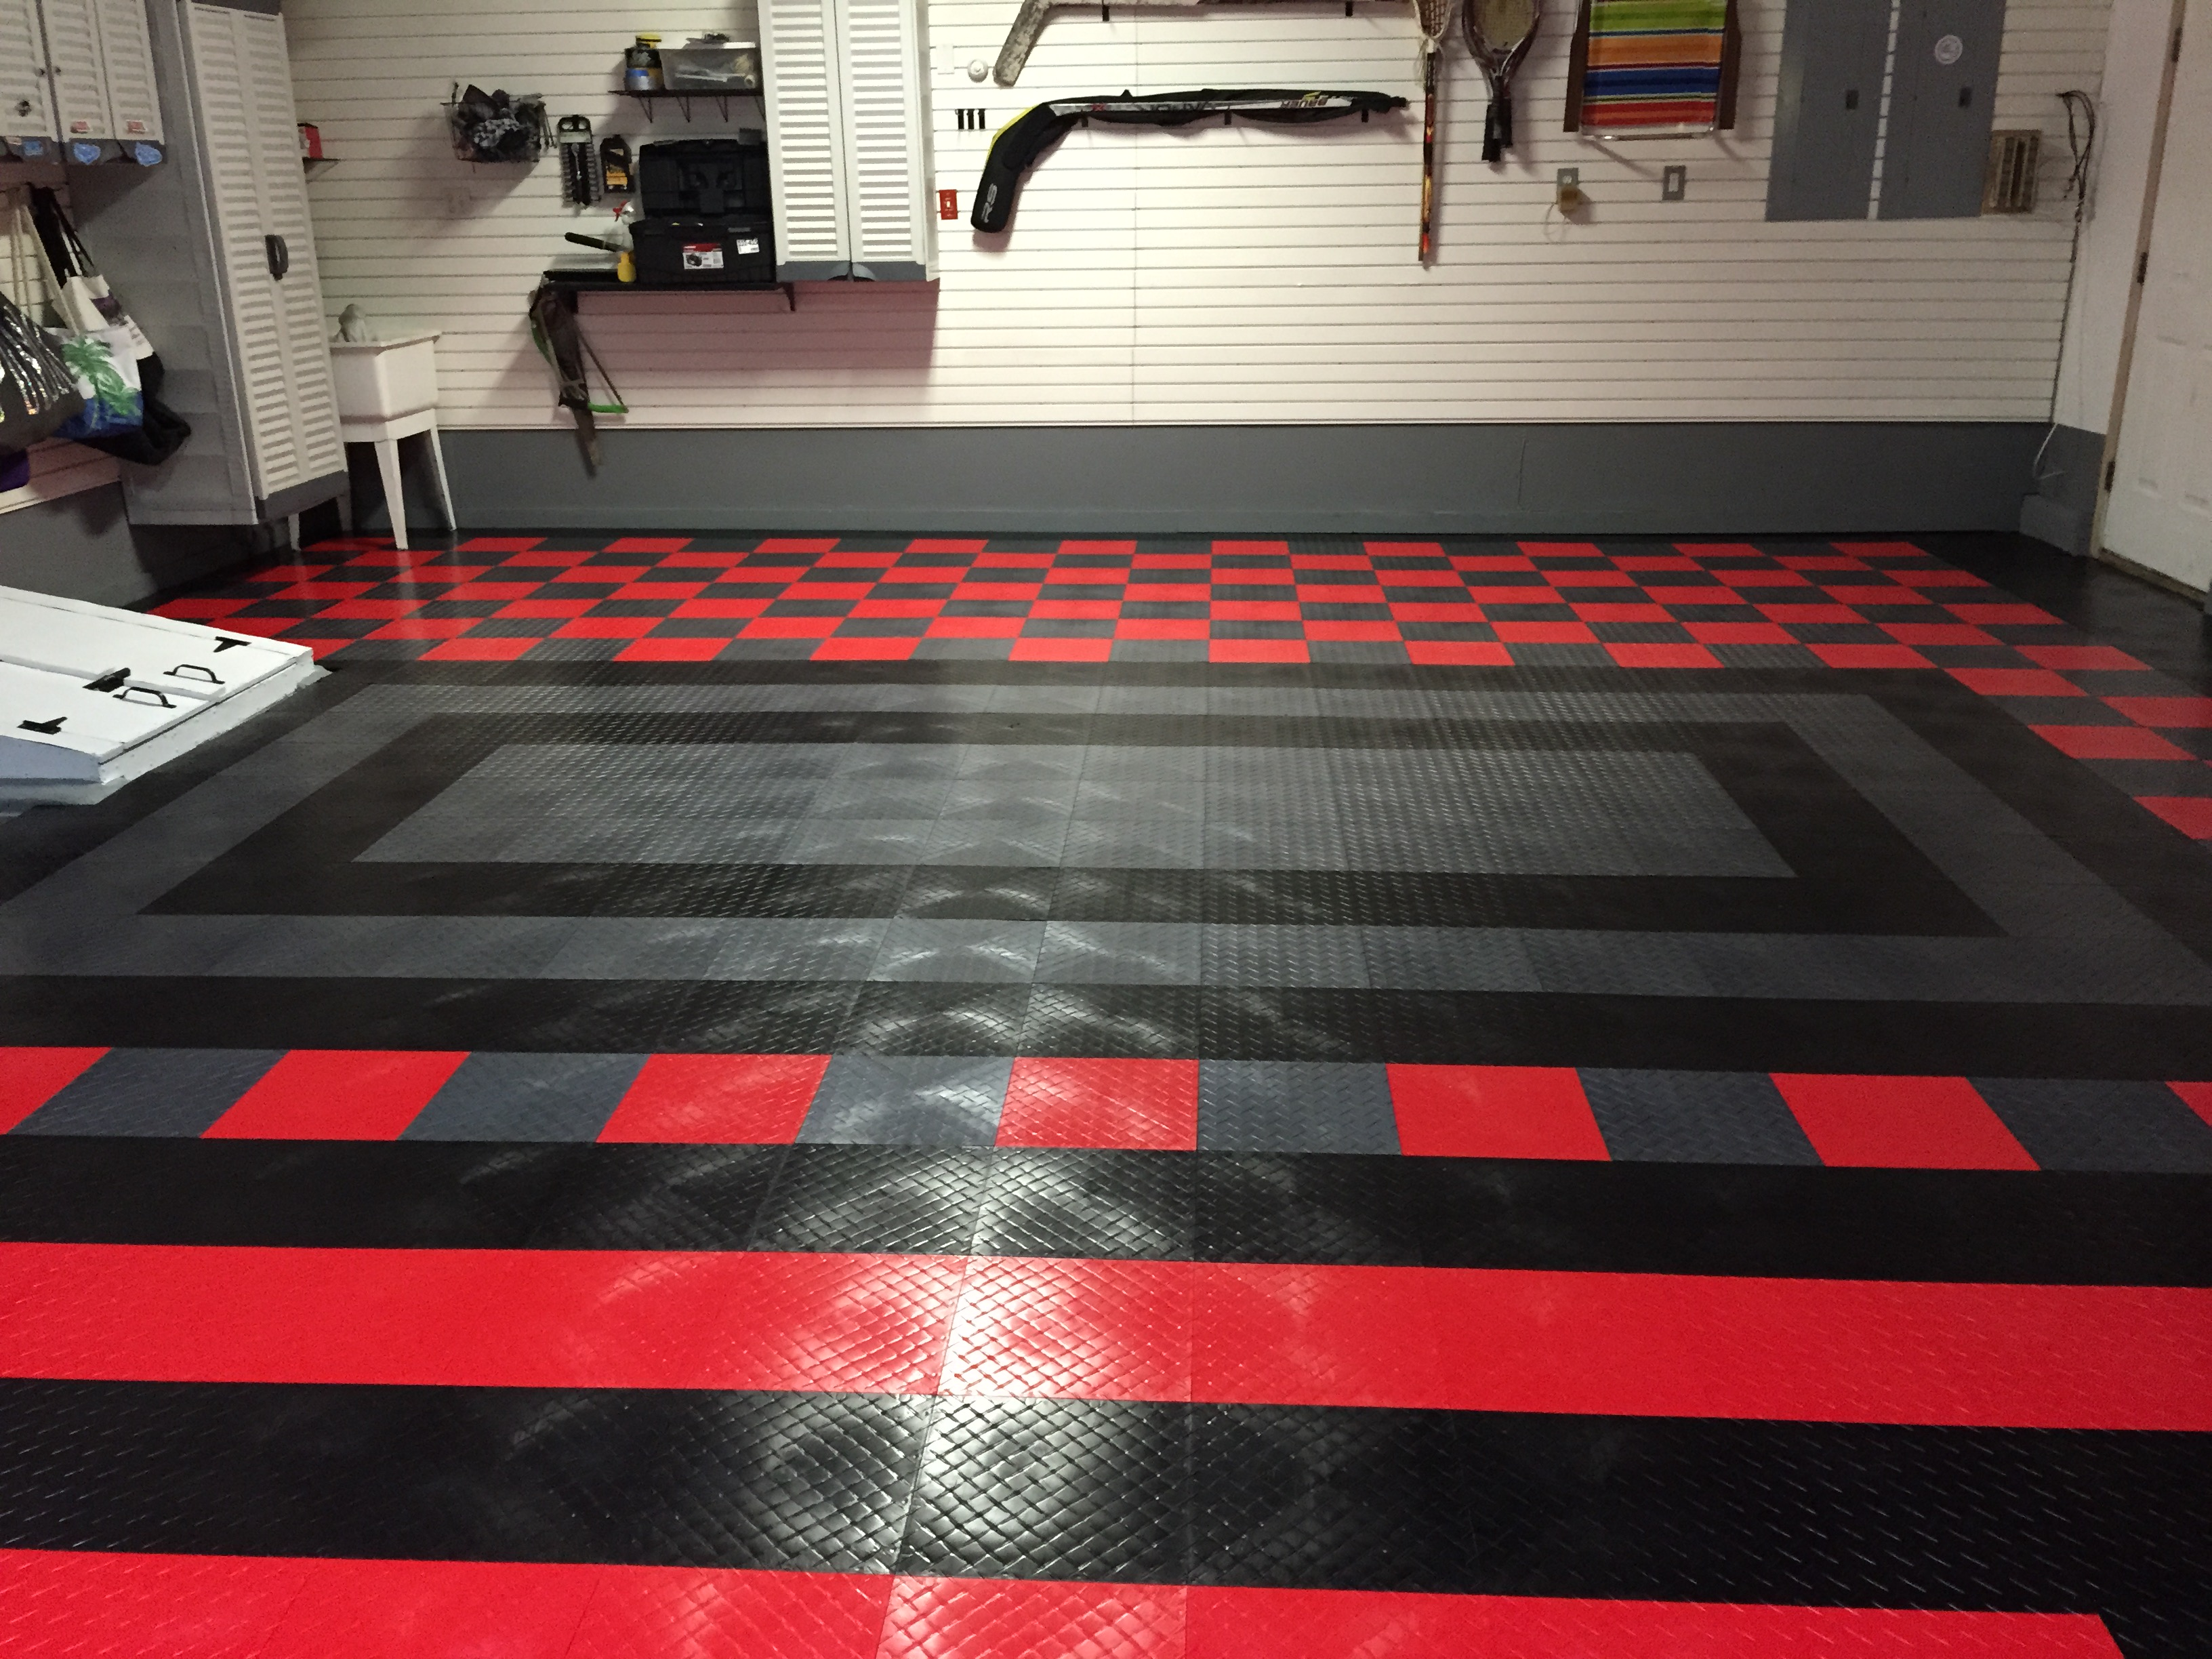 Installing racedeck garage flooring page 4 name img3329g views 815 size 154 mb dailygadgetfo Image collections